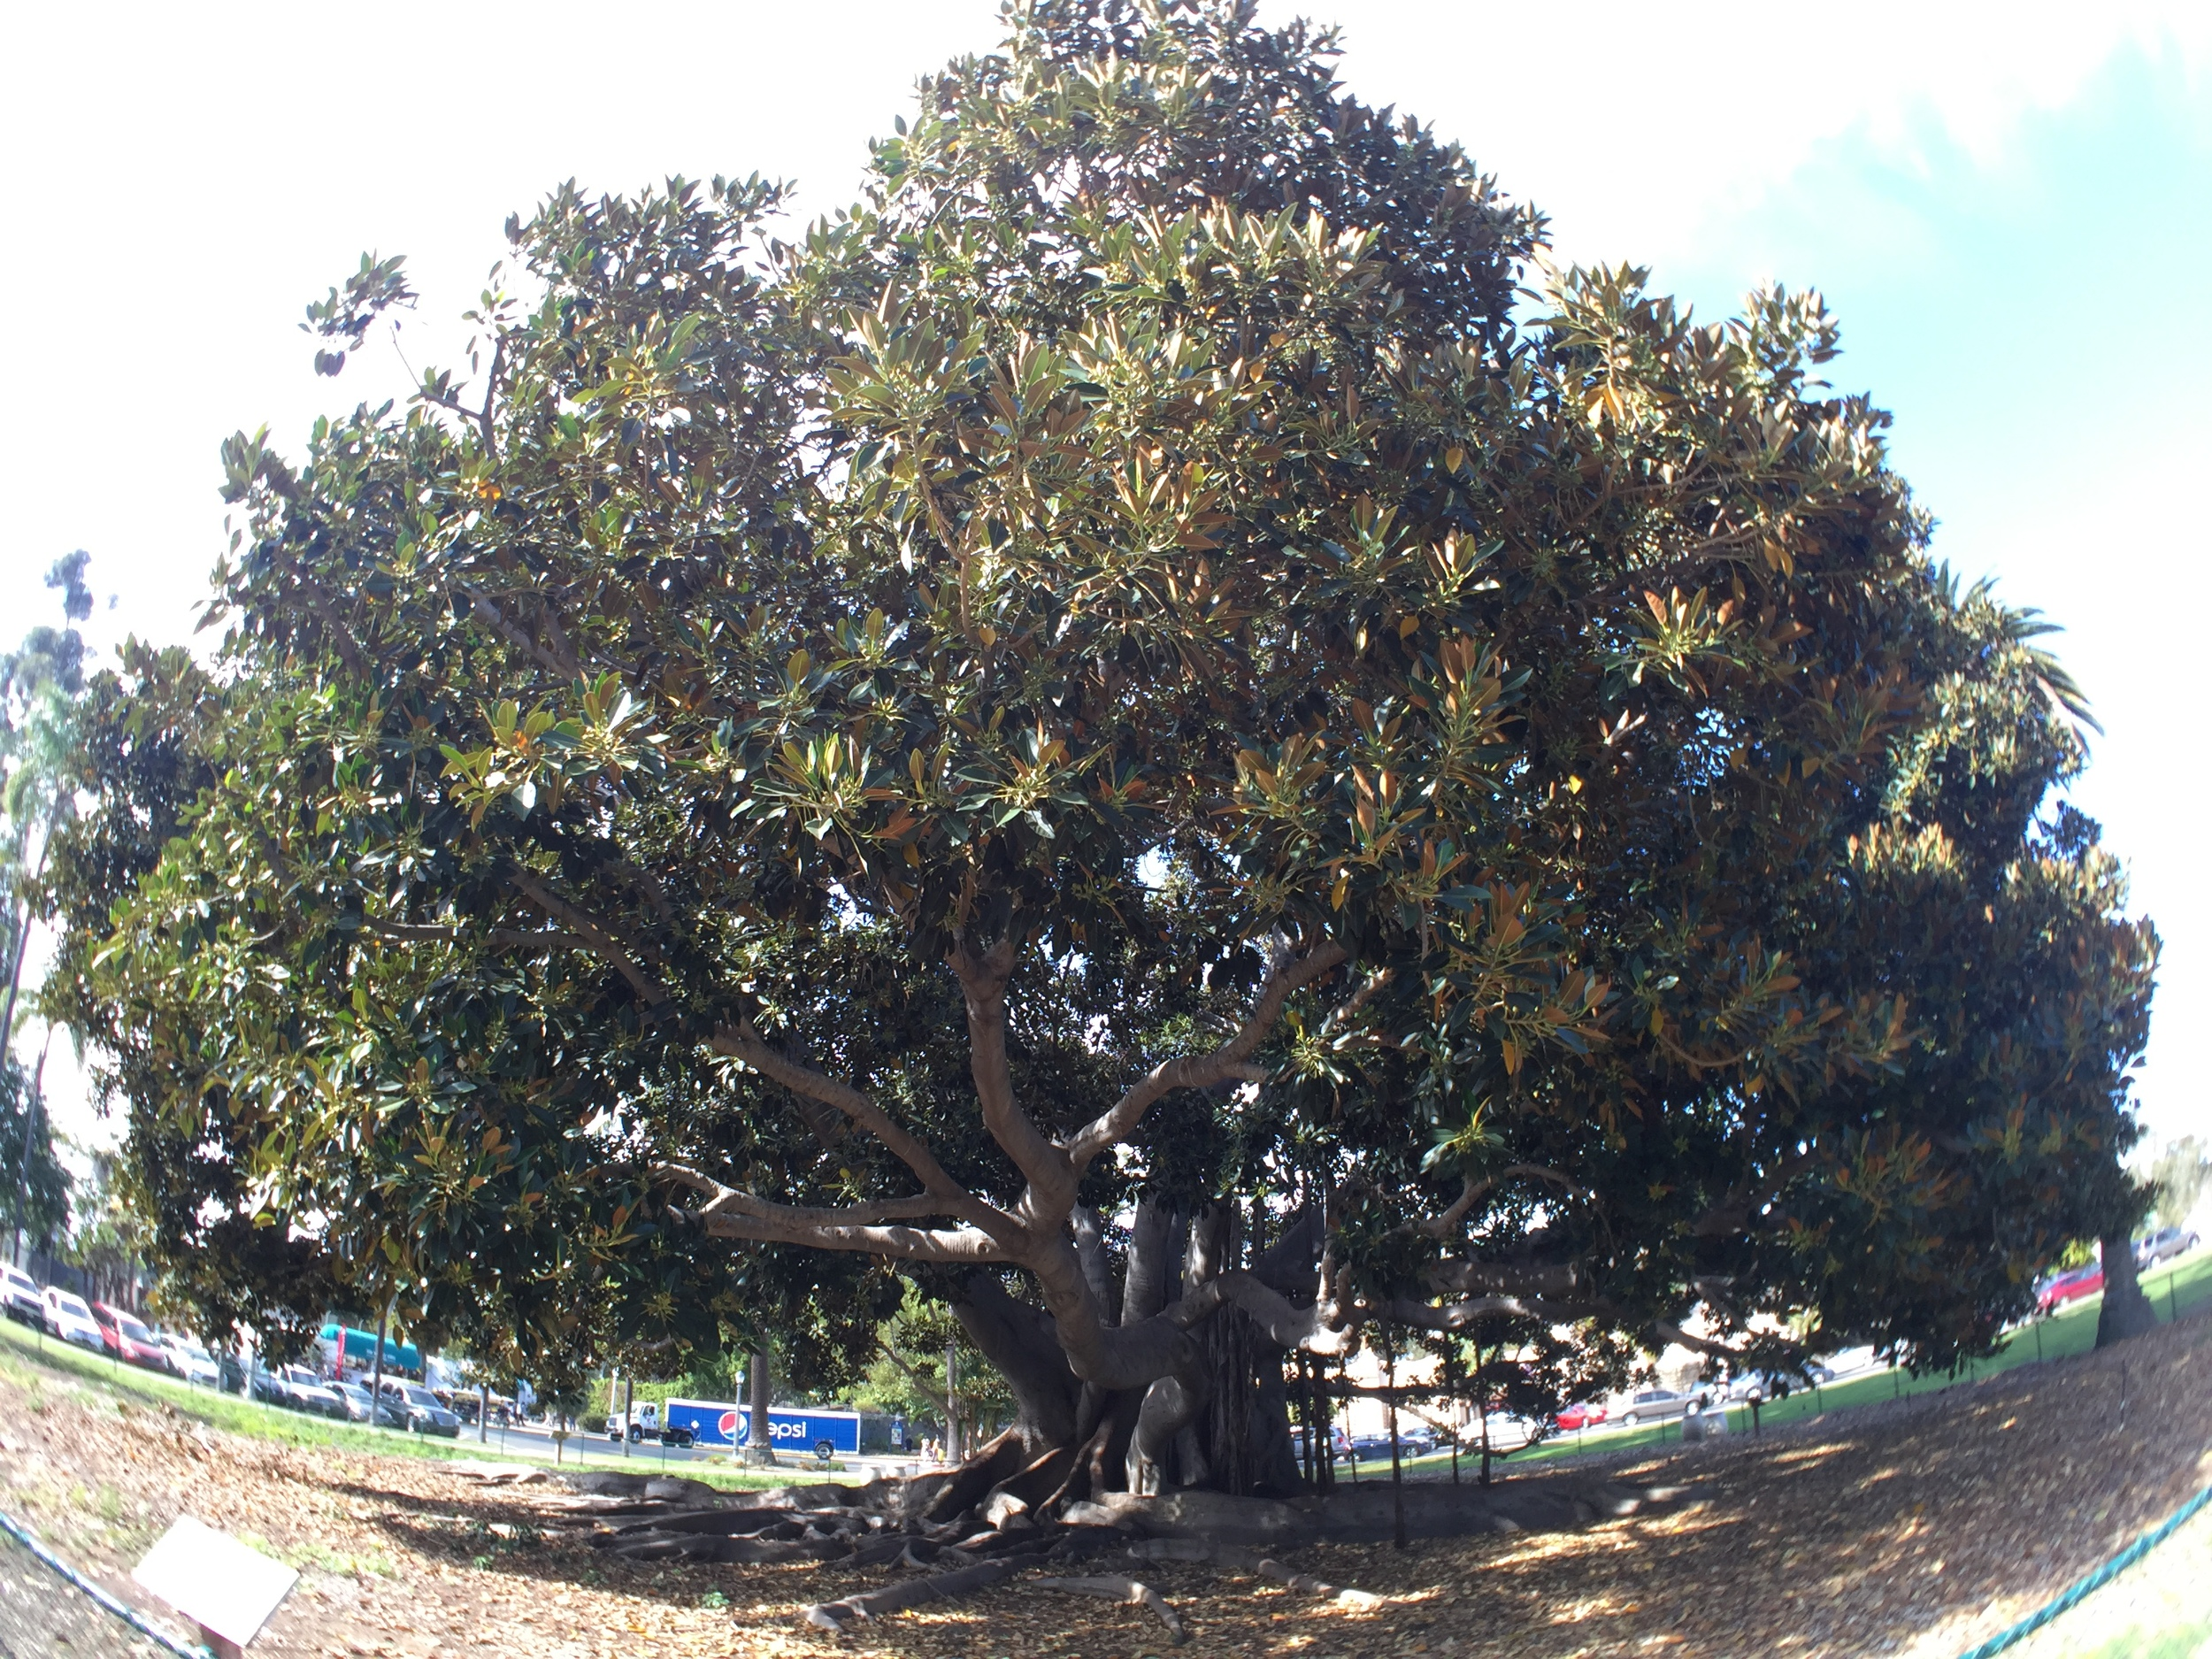 Right outside the  San Diego Museum of Natural History  stood this 90-year-old fig tree. 90-years old is a bit above the Twitter demographic, but I snapped a pic anyway.